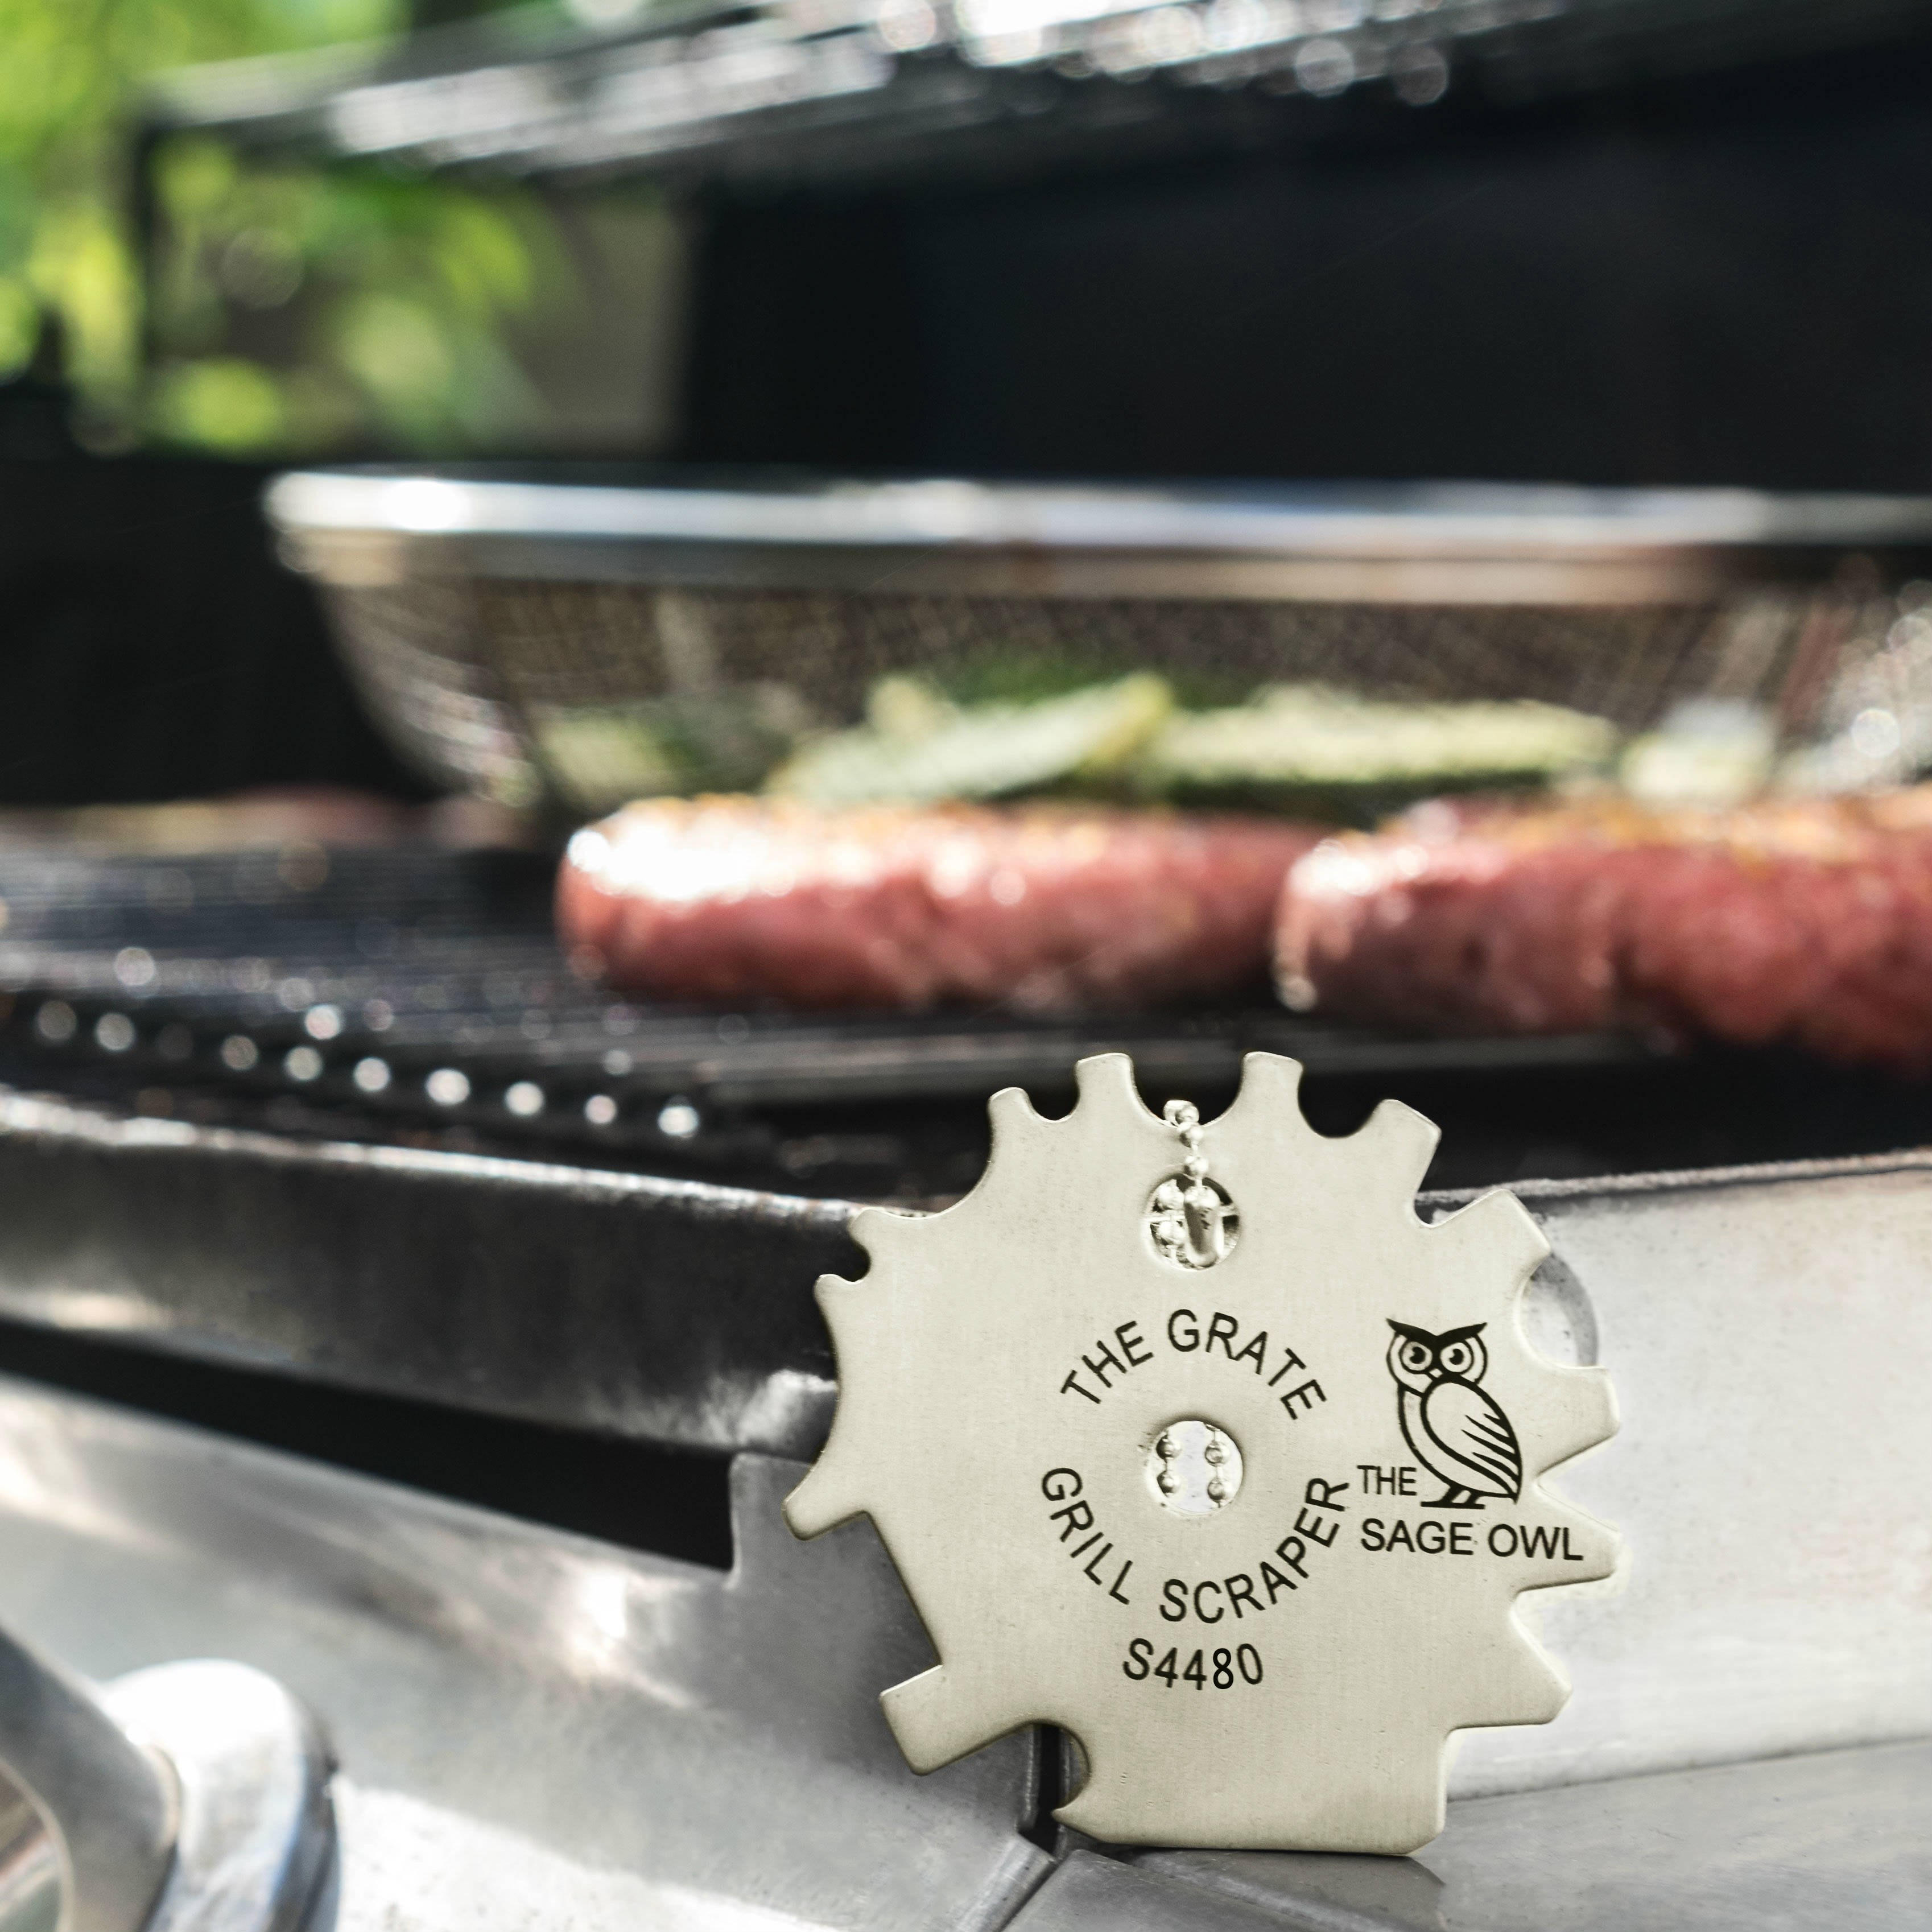 S4480 - The Grate Grill Scraper - Stainless Steel BBQ Grill Tool